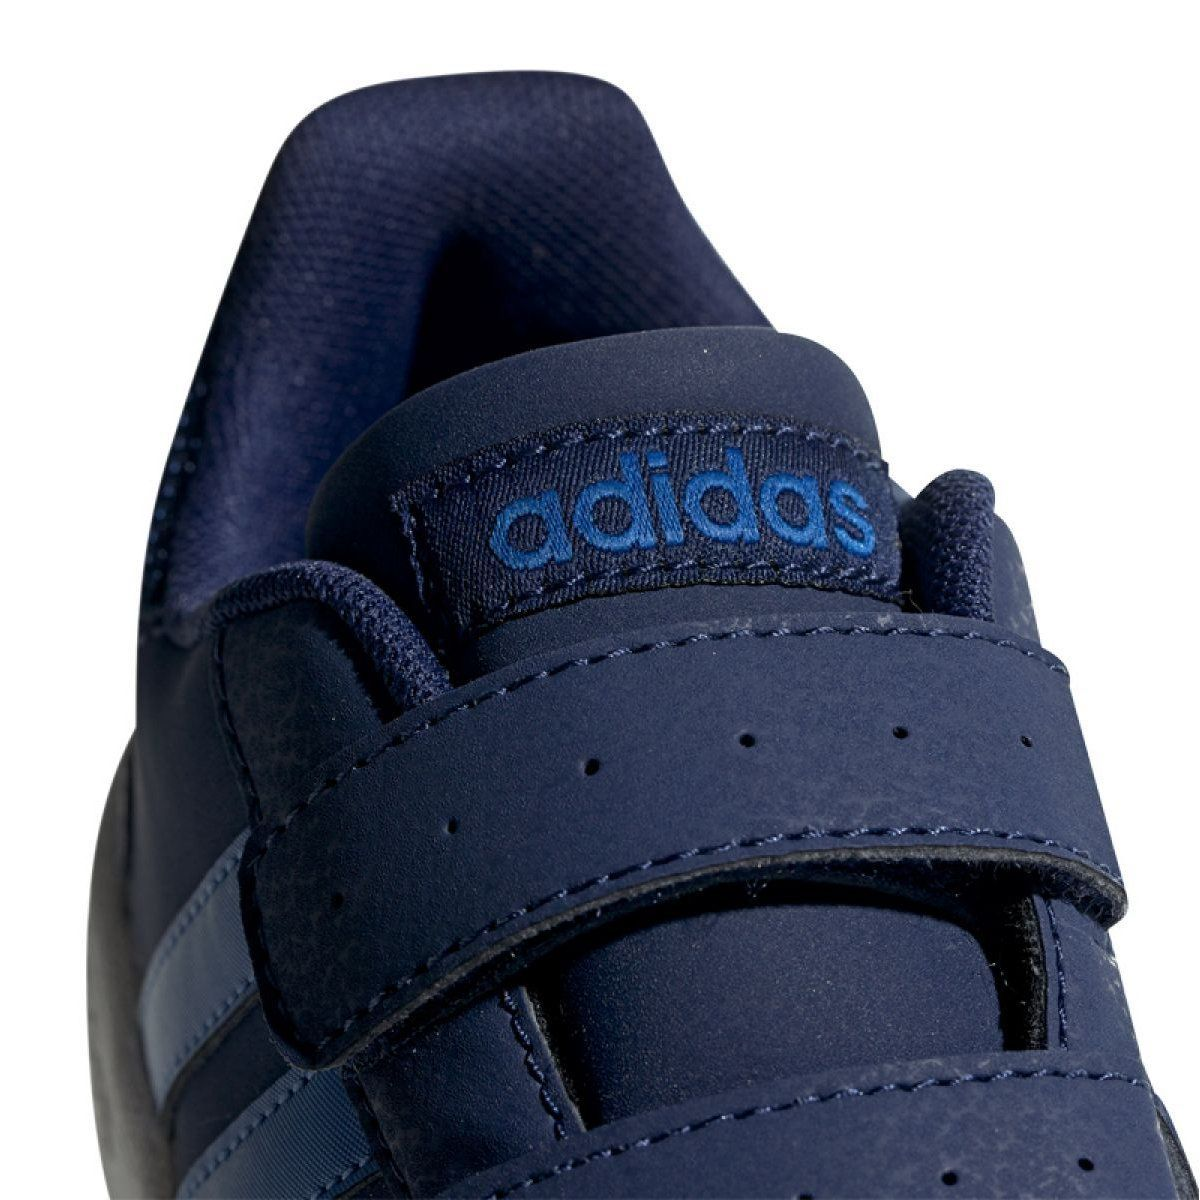 Adidas Shoes 80 Off Children S Sports Shoes For Children Adidas Shoes Adidas Hoops Adidas Ad Shoes Sneakers Adidas Adidas Shoes Sports Shoes Adidas